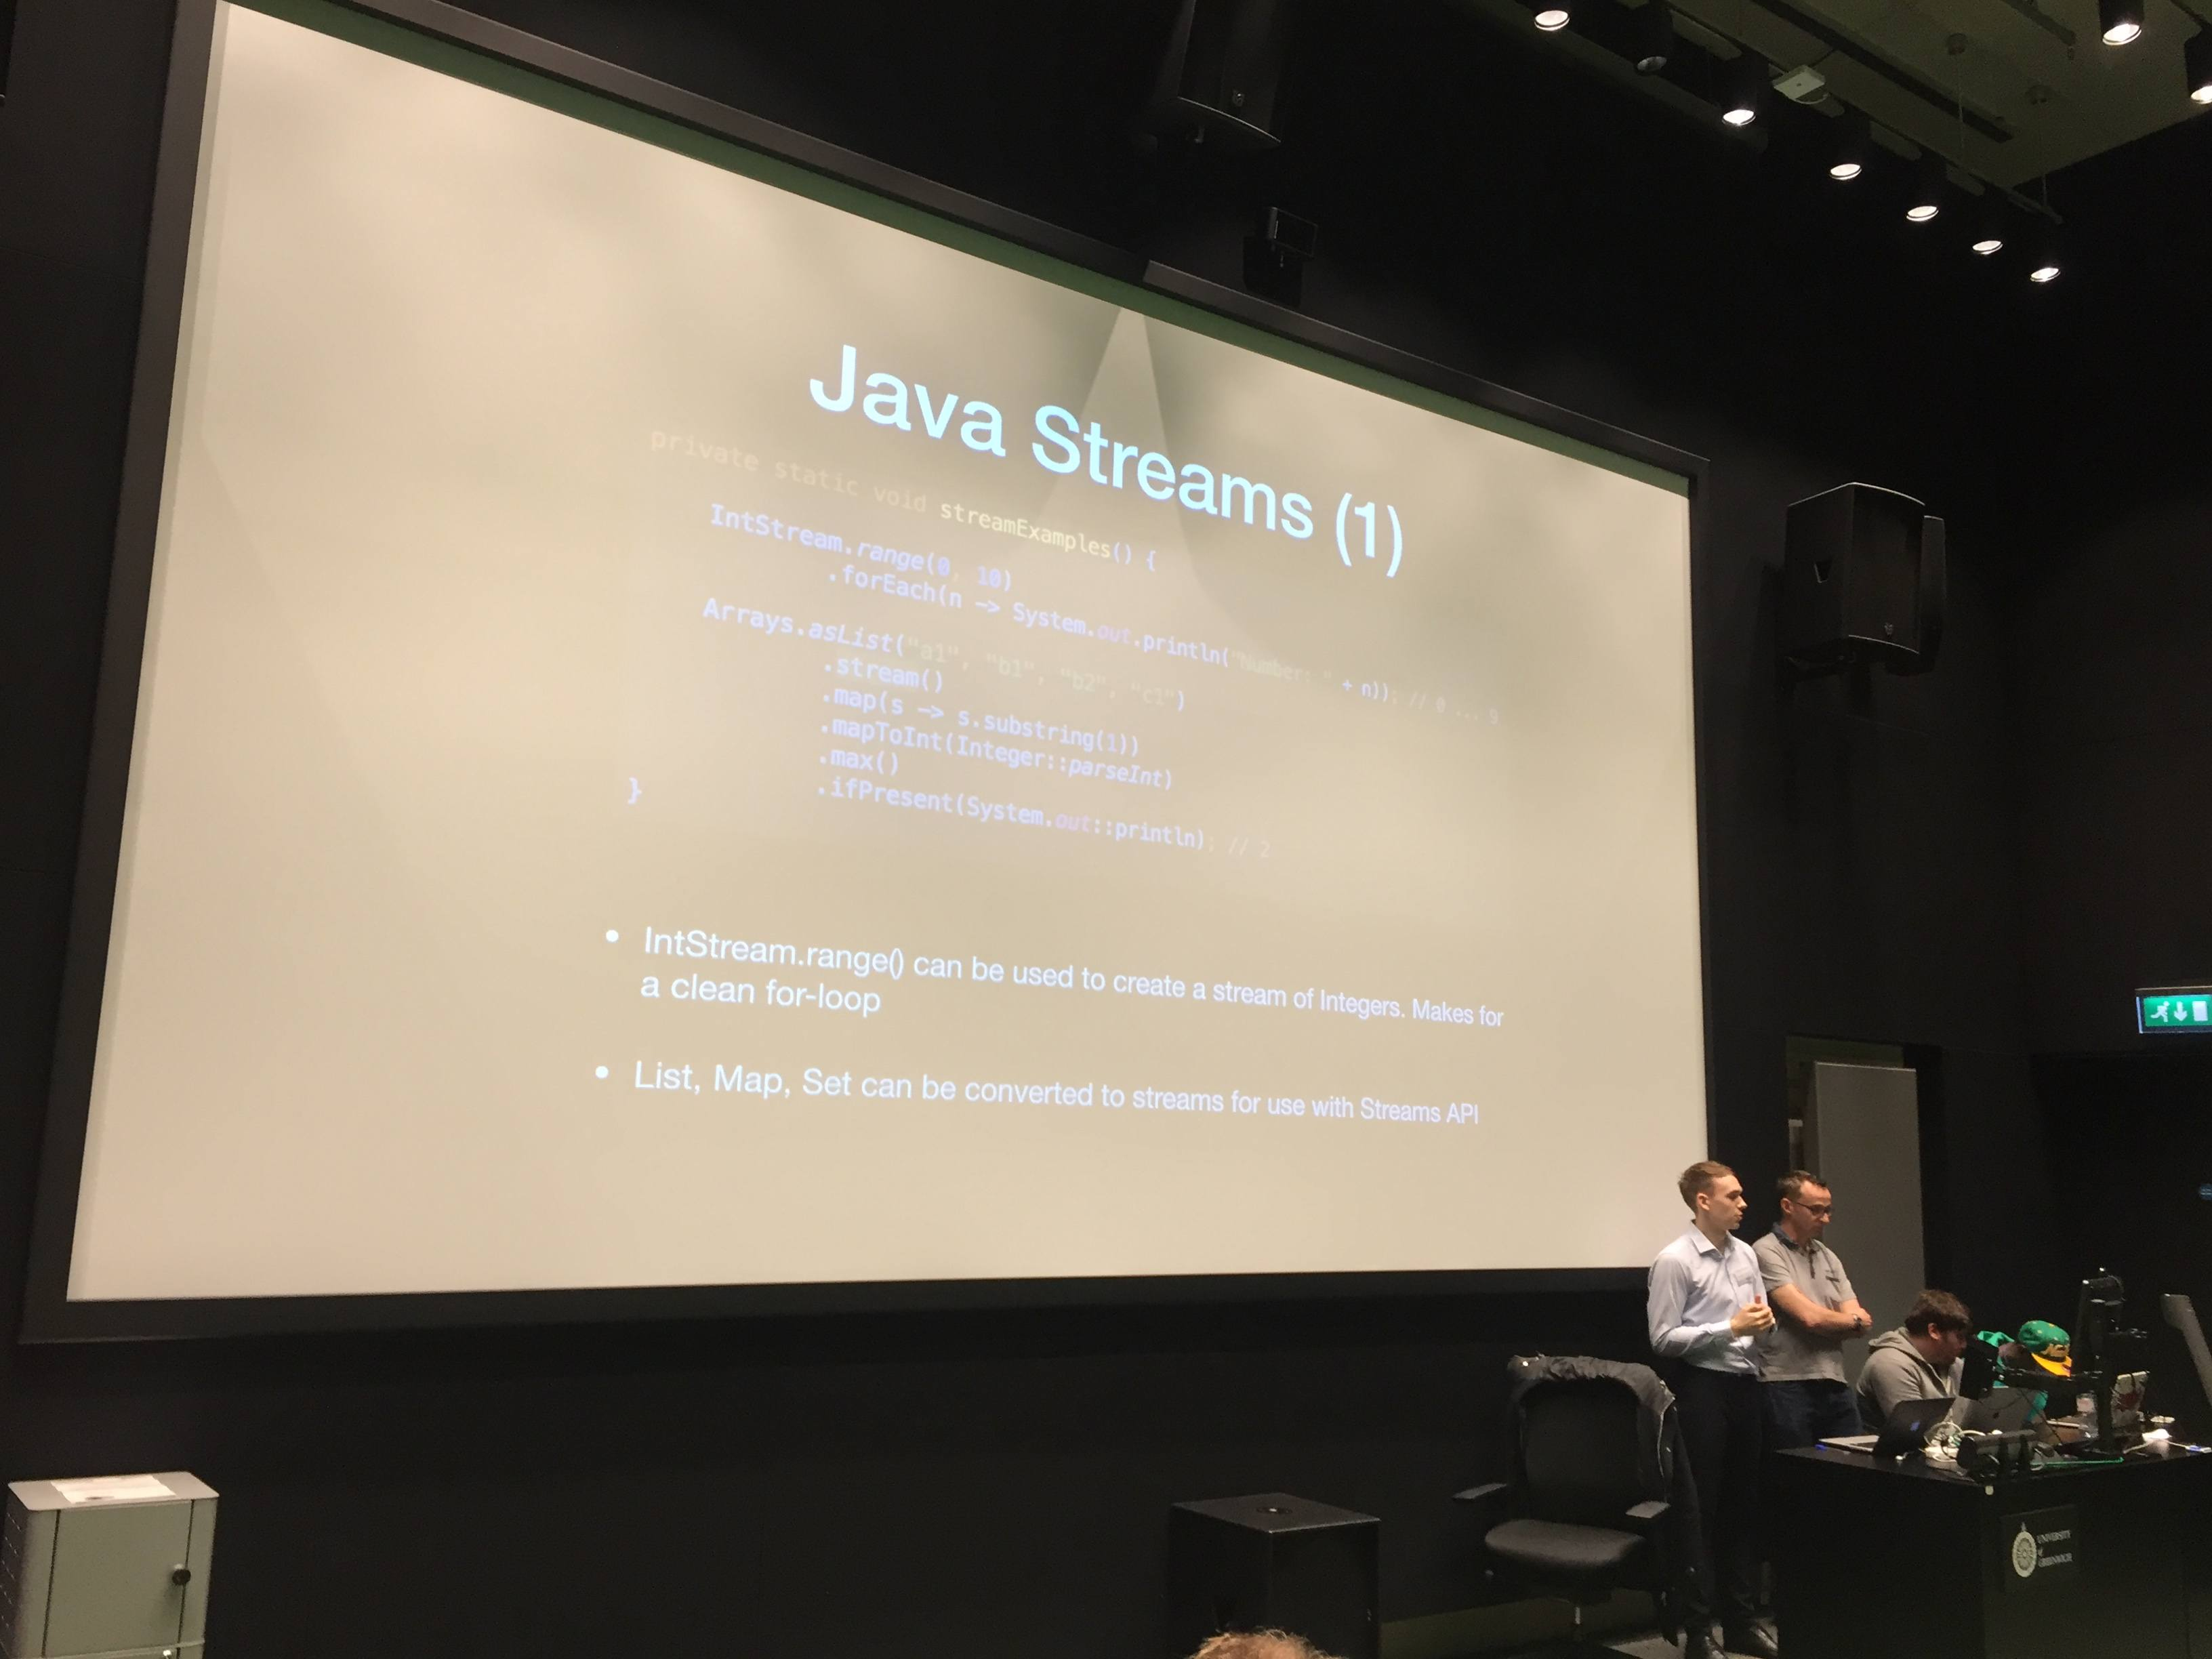 Java 8 Streams slide